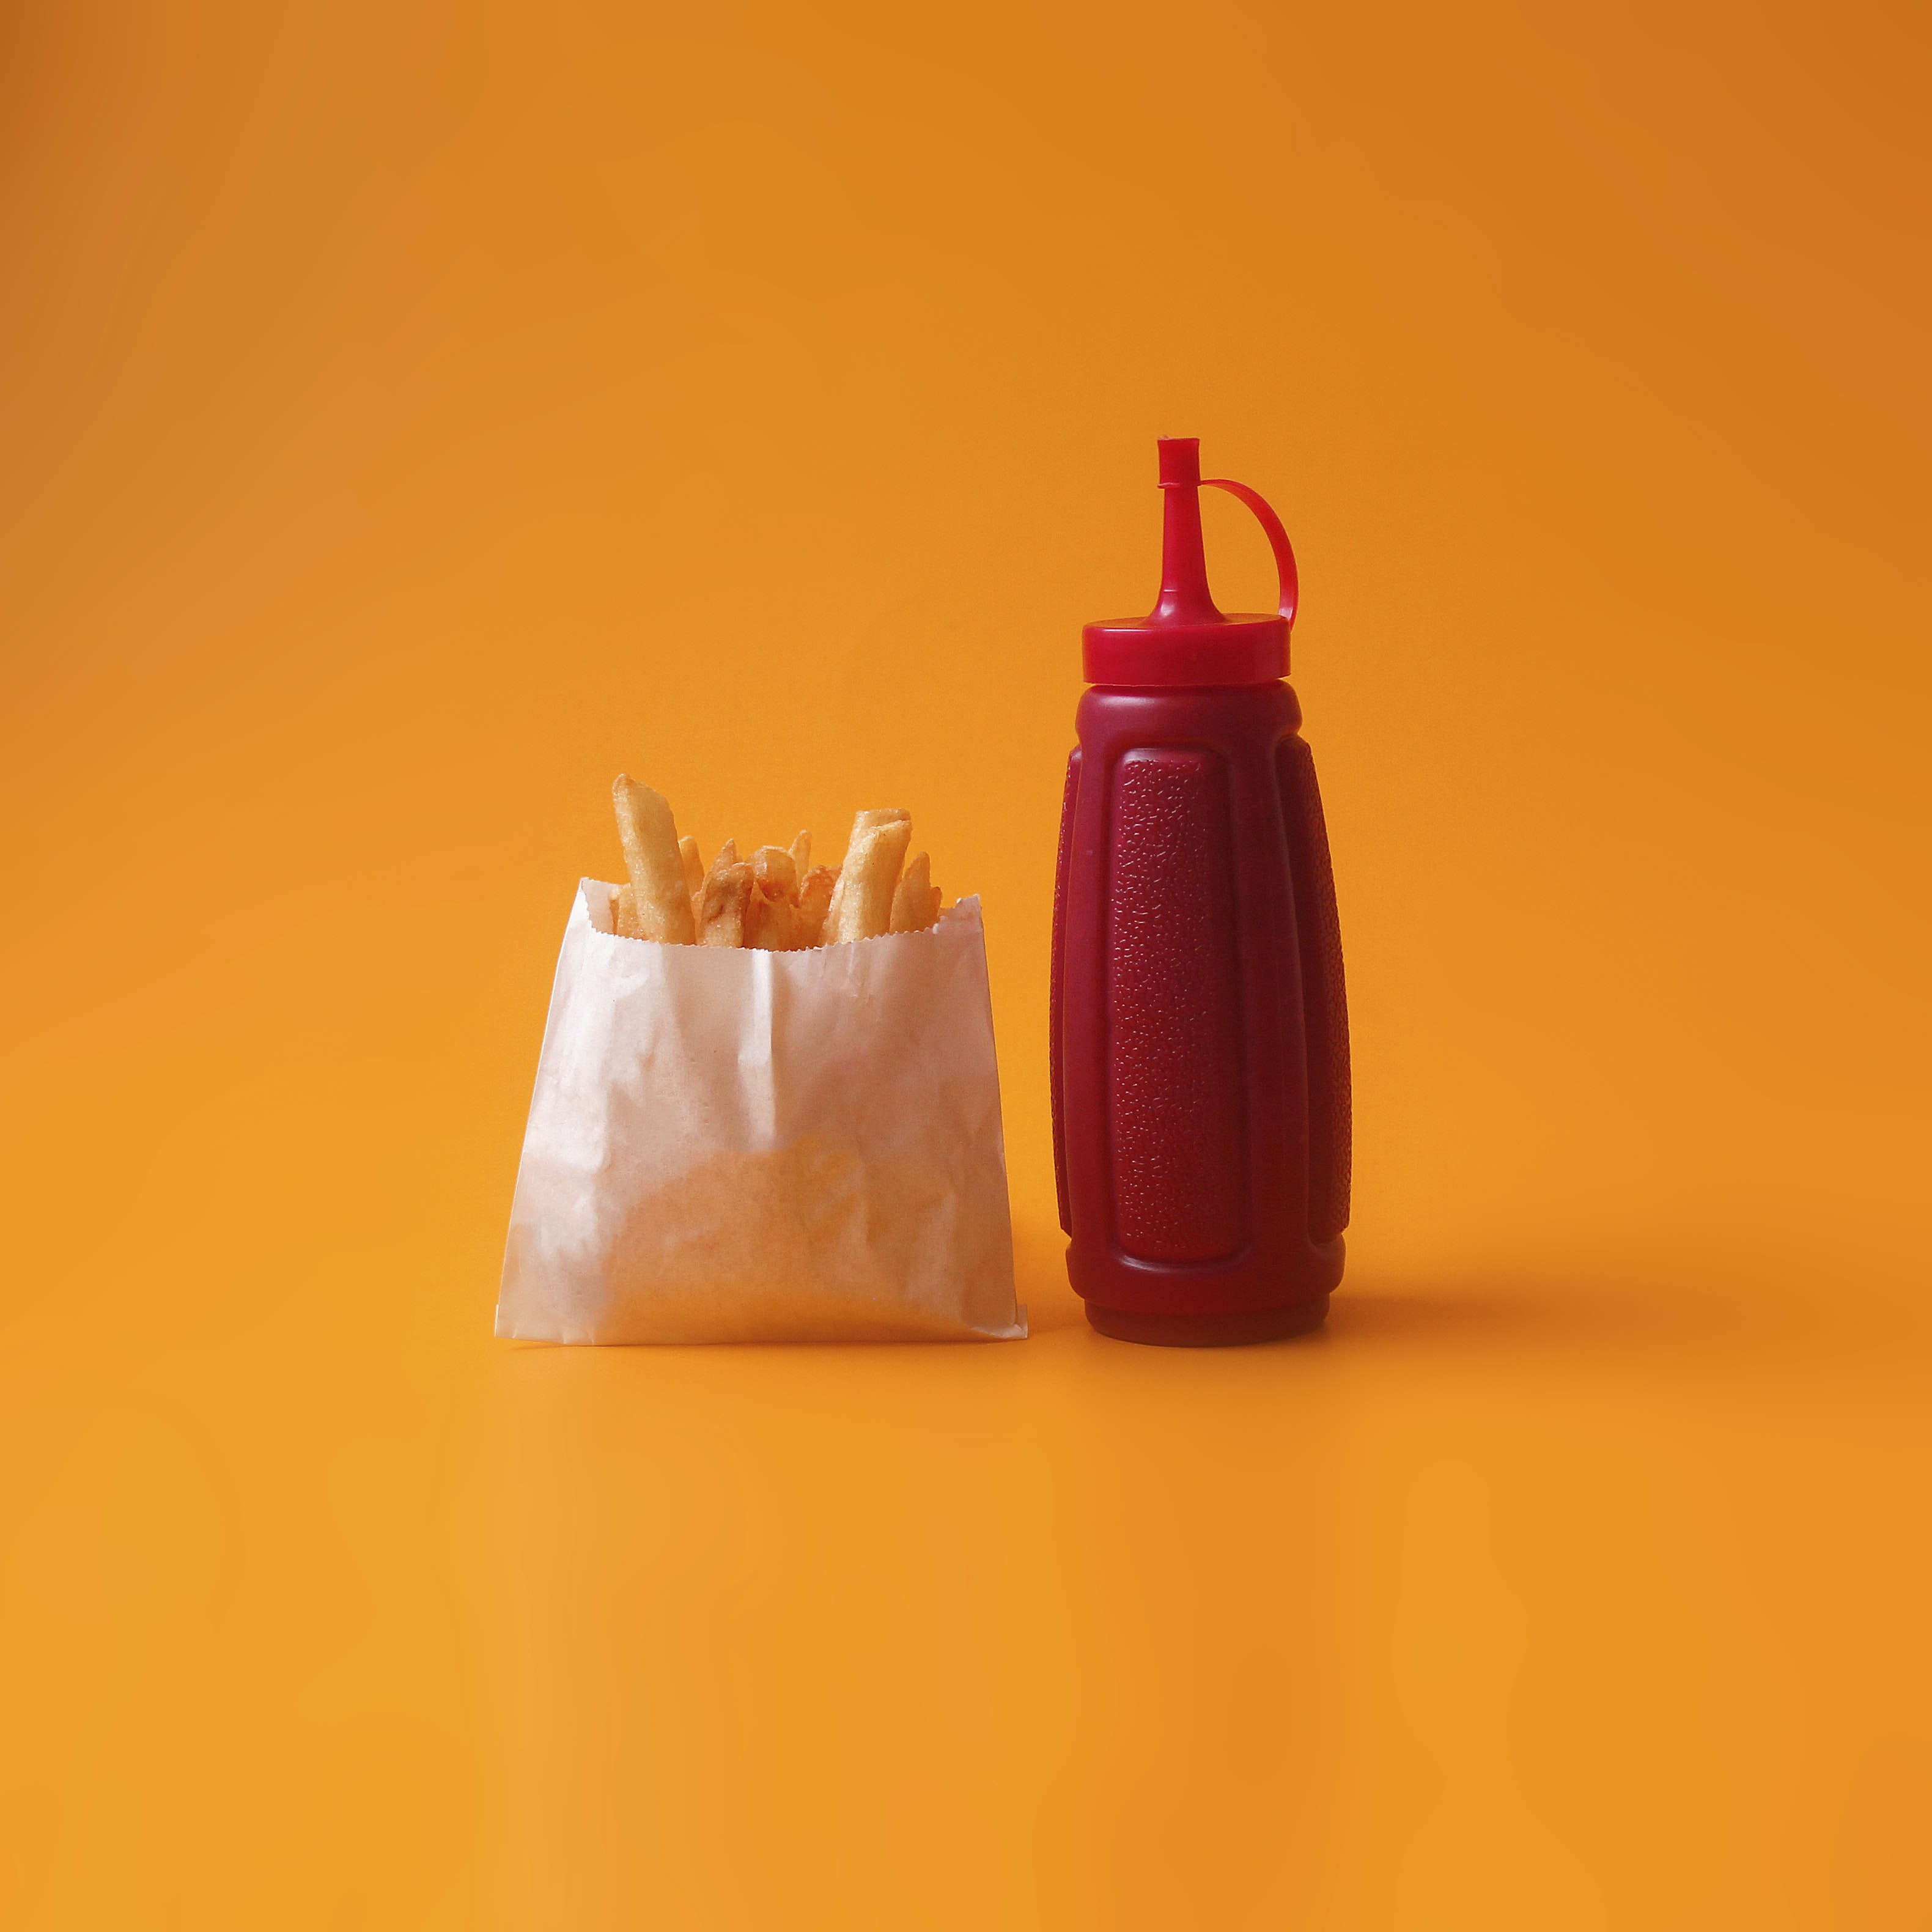 fried fries in white pack beside red squeeze bottle